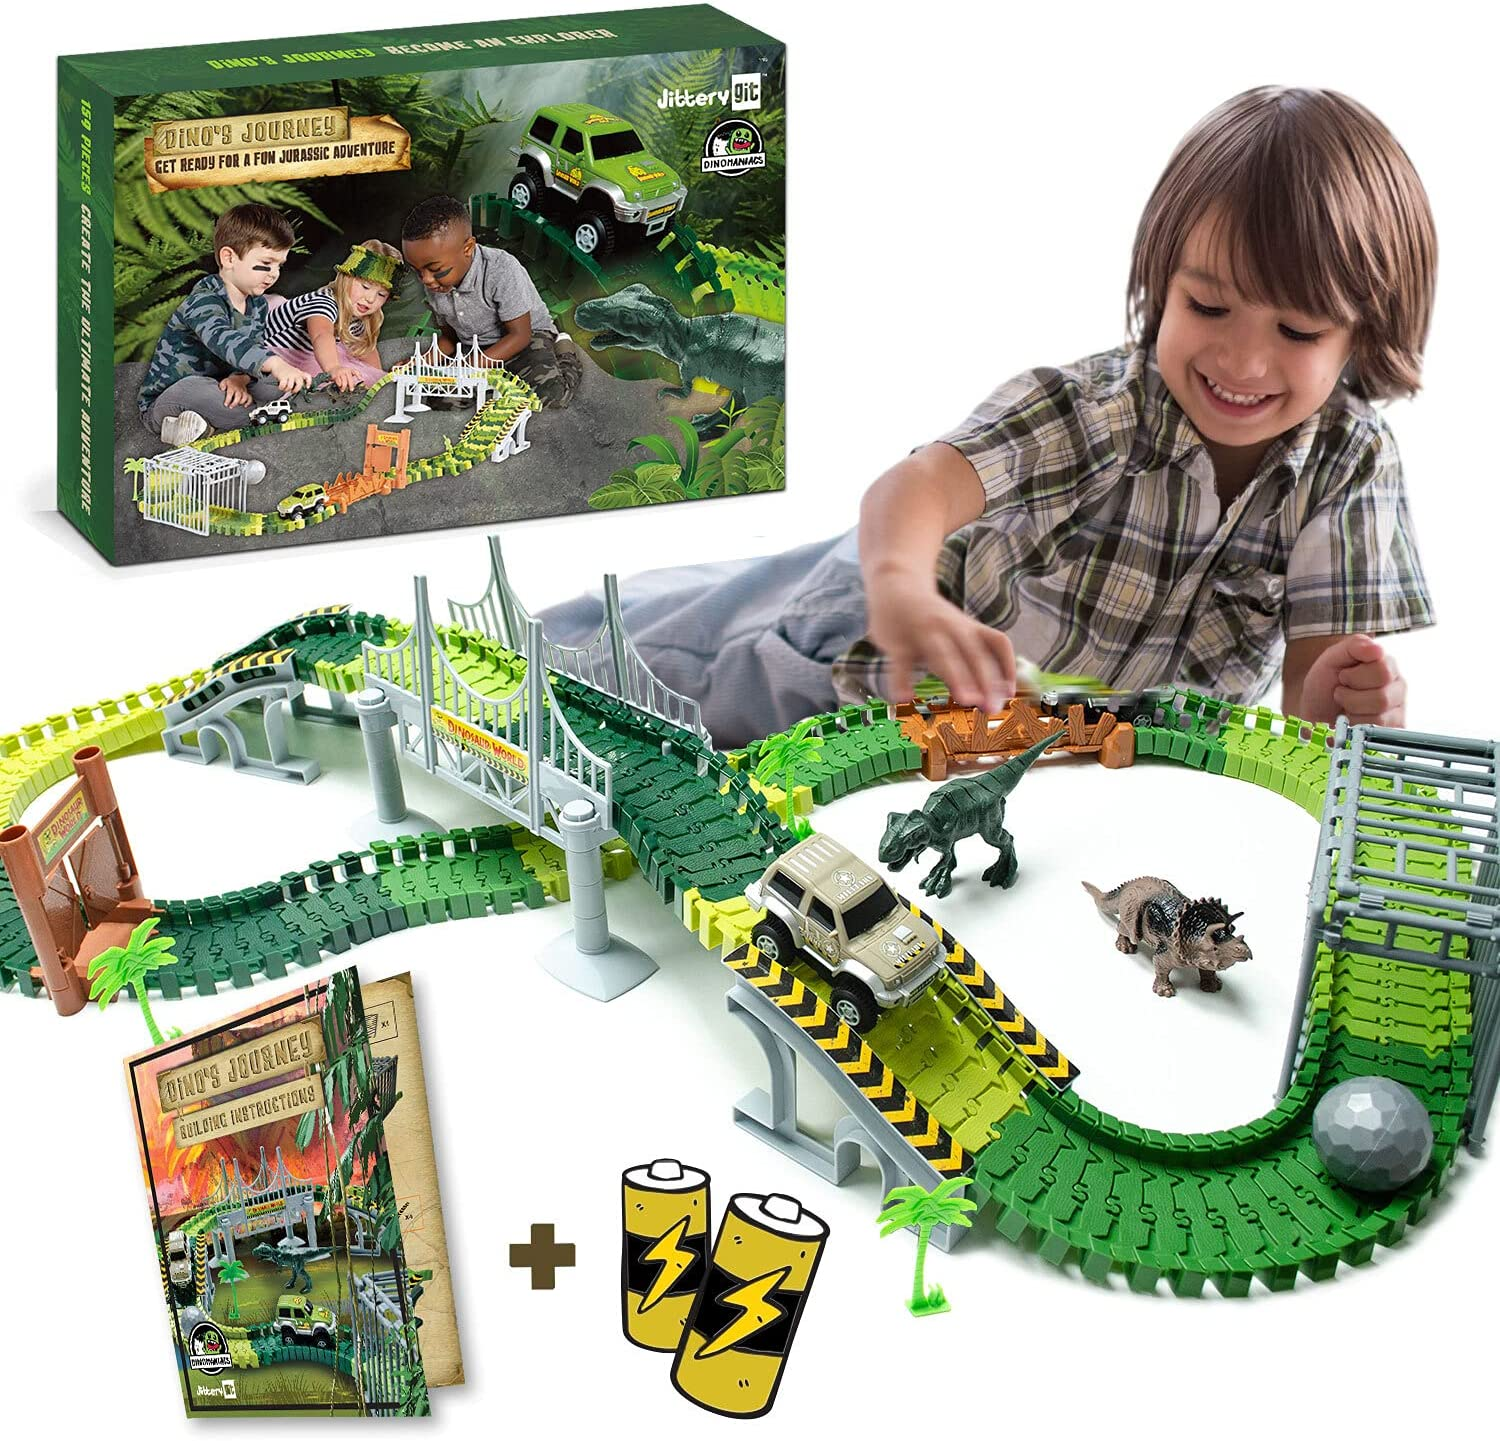 Dinosaur Toys Track For Boys and Activities Low price Girls STEM - Excellence fo